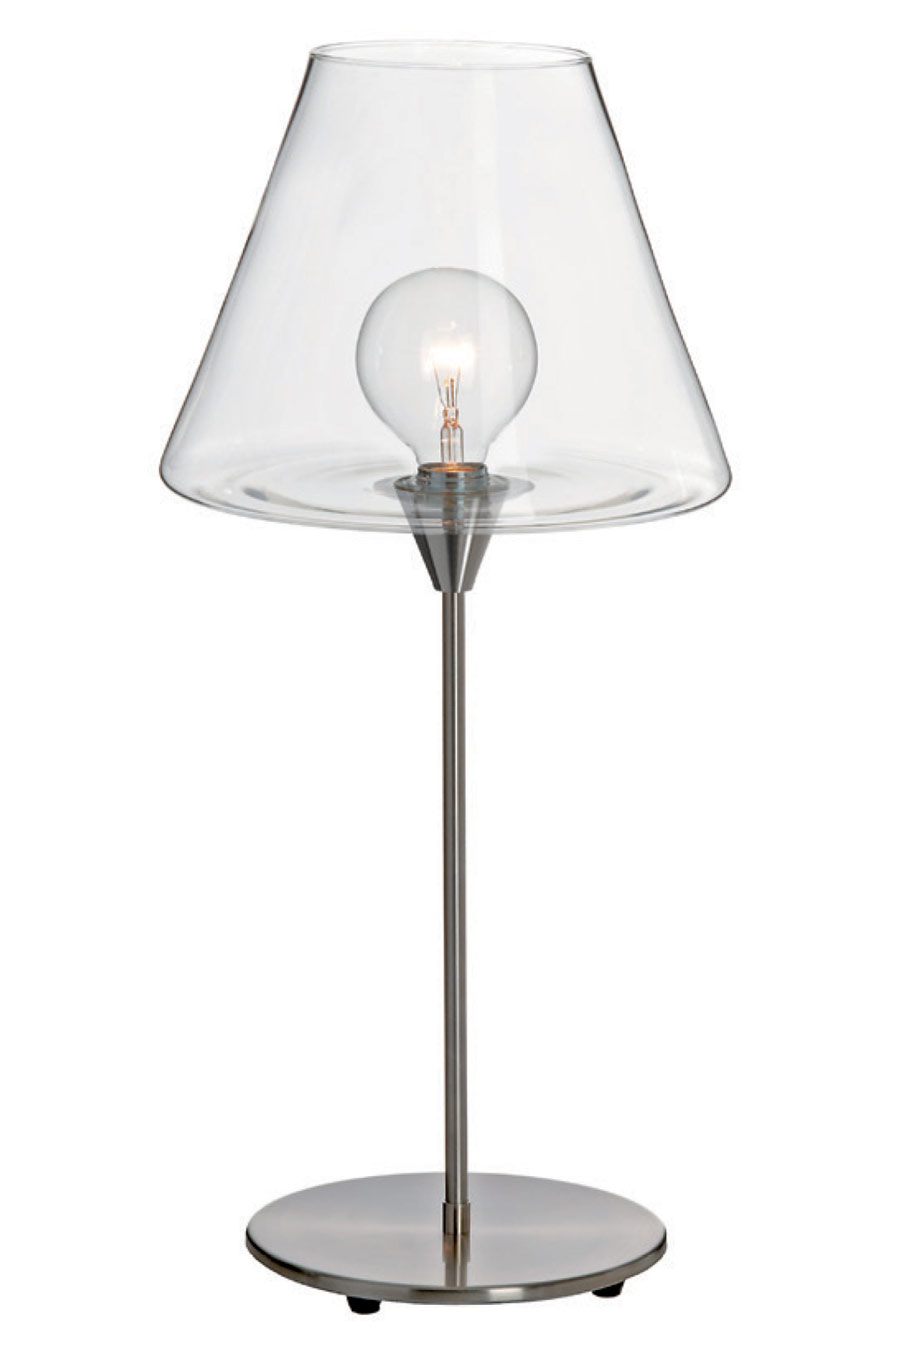 Jelly lampe de table Large. Harco Loor.